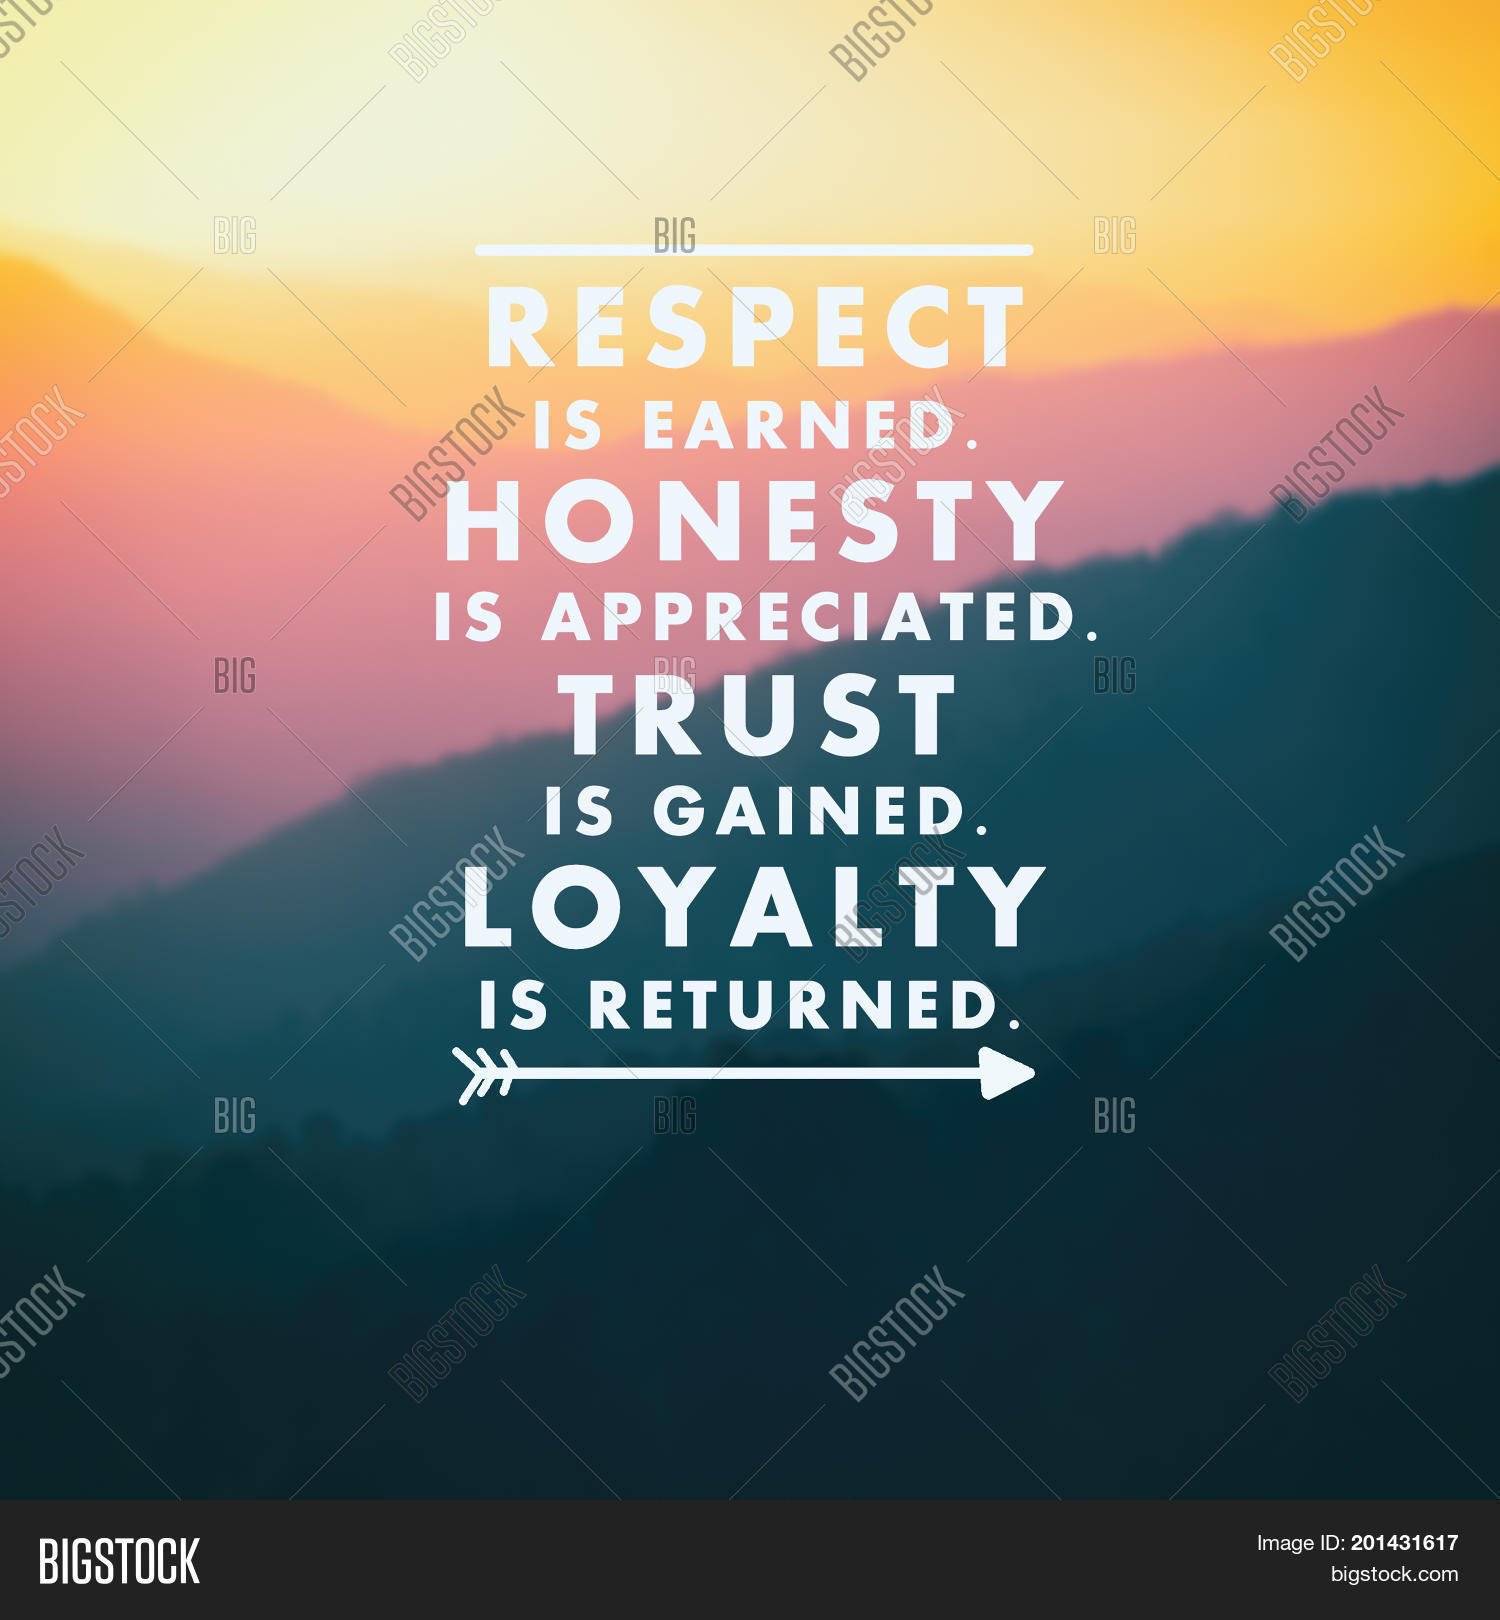 Quotes Respect Inspirational Quotes  Respect Image & Photo  Bigstock